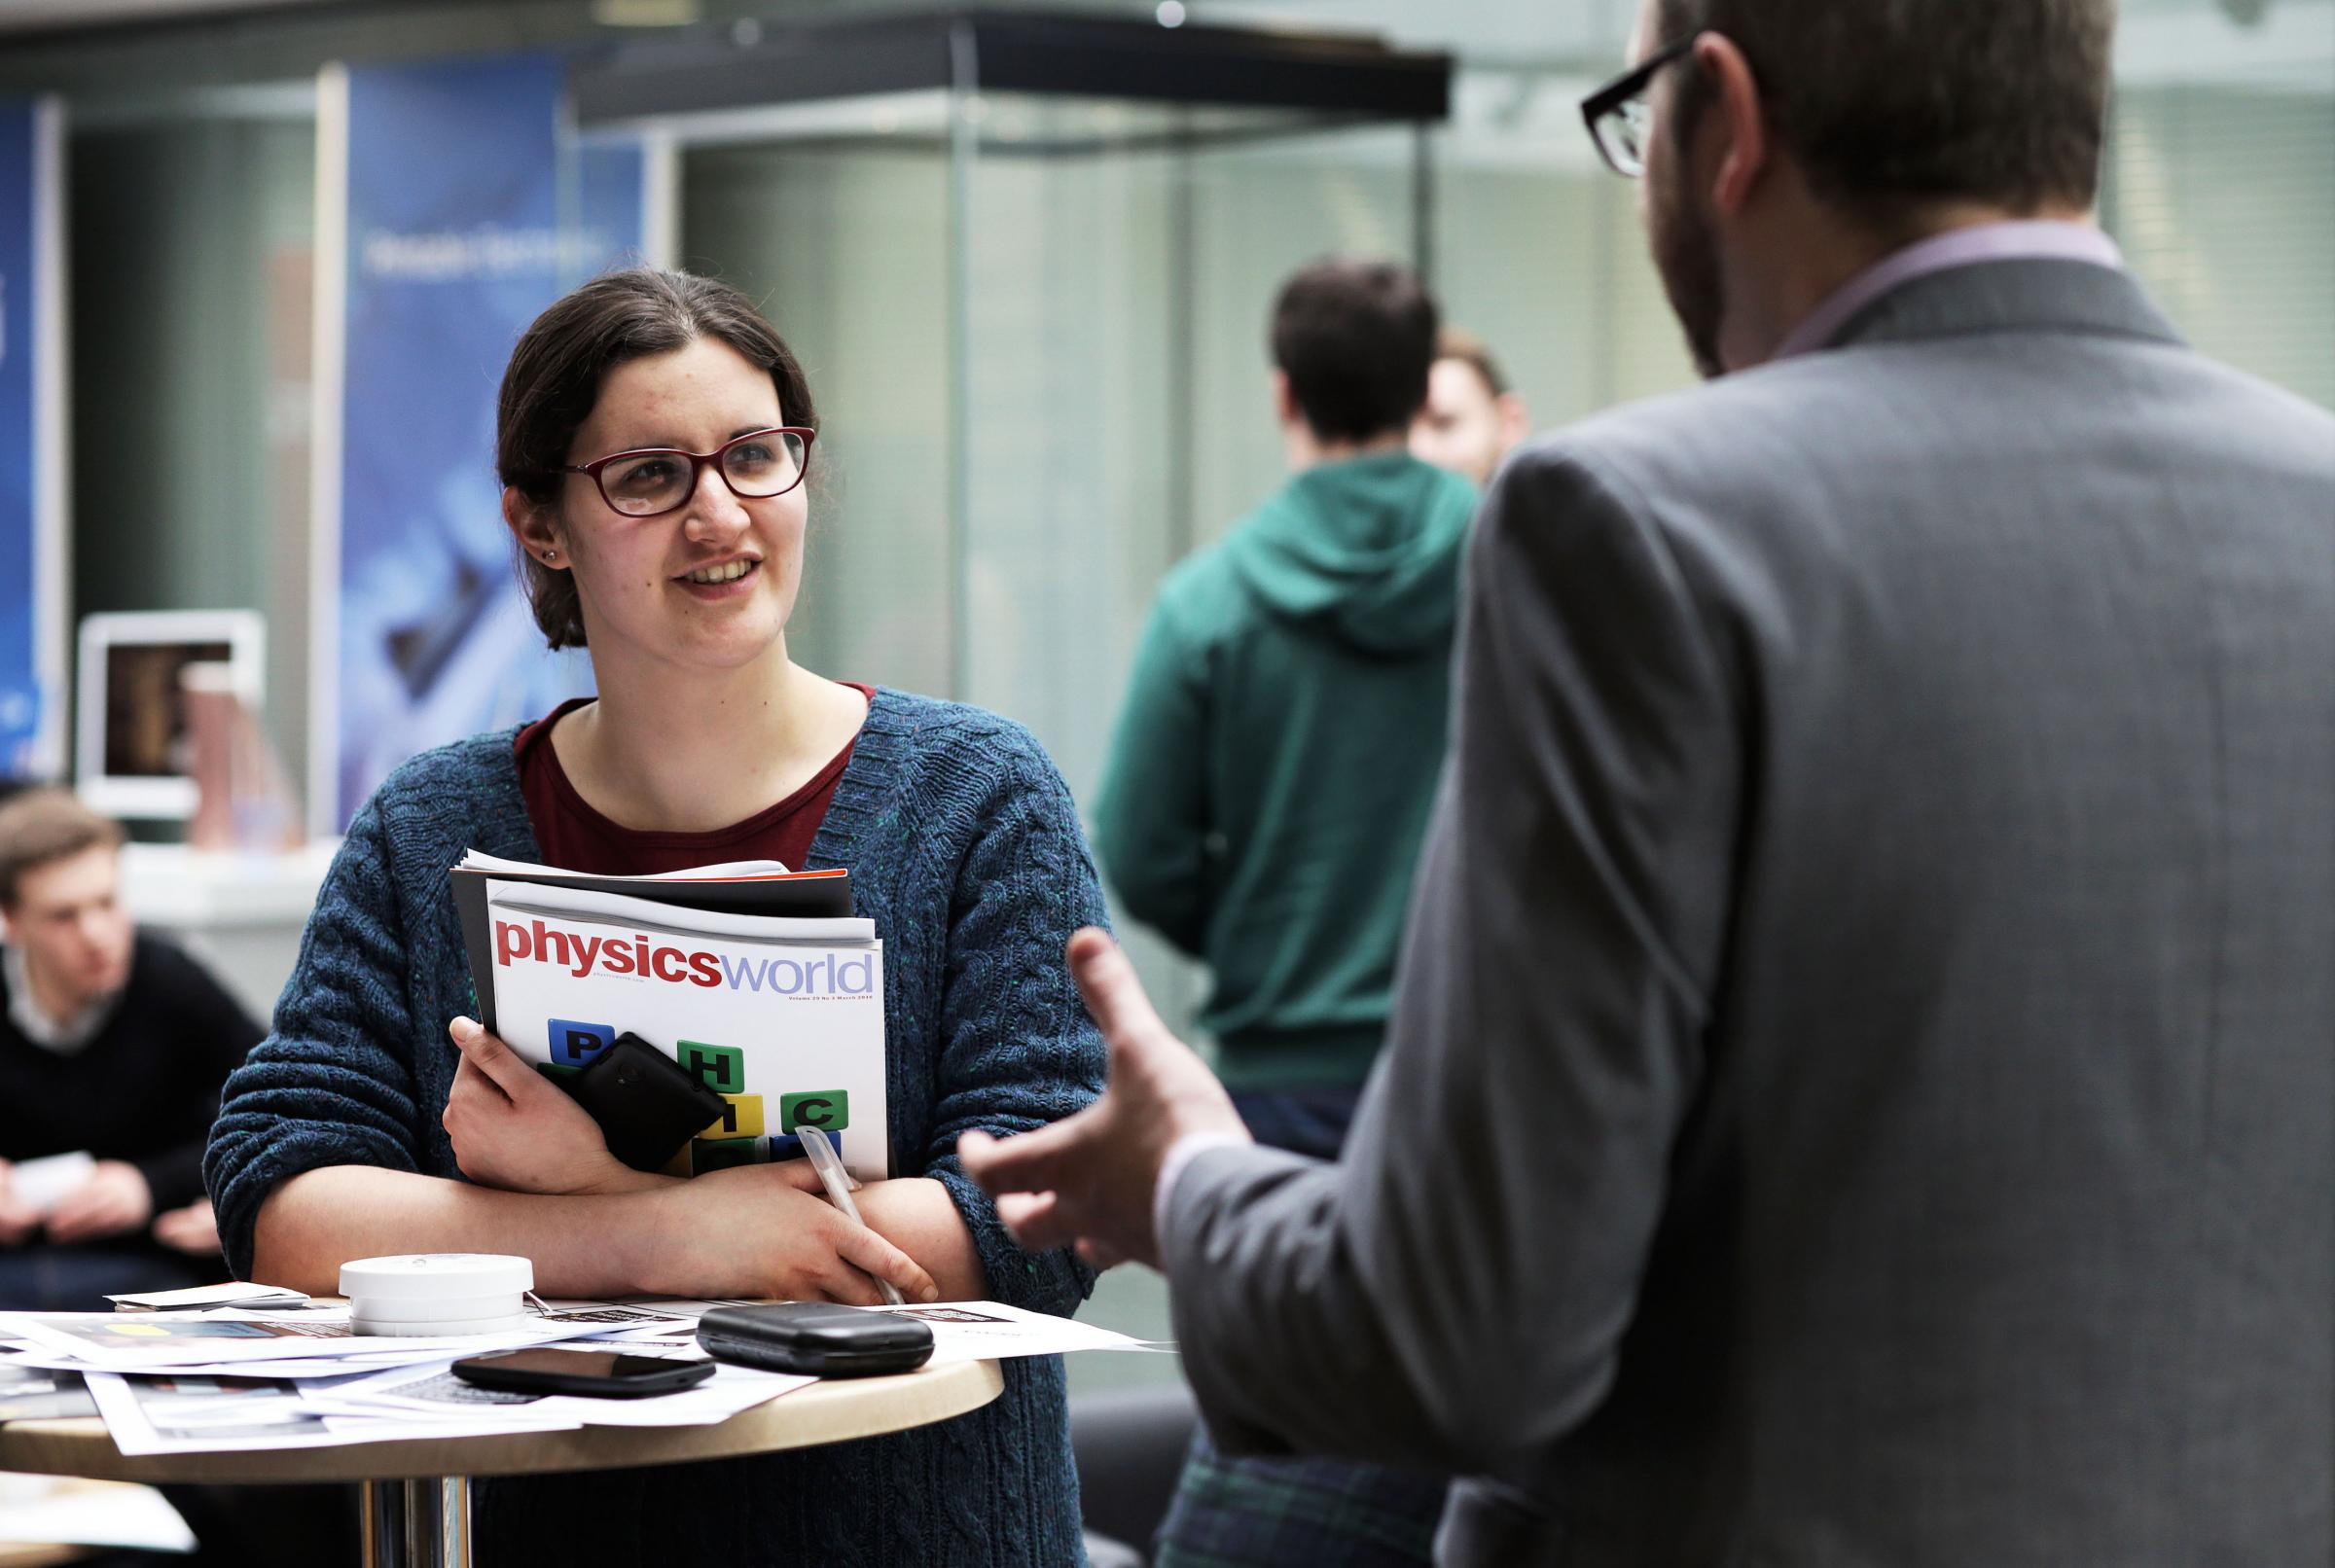 Durham University physics student Lara Small networking with Dr Adam Tuff, a nuclear physicist at Kromek Ltd, during the event. Picture: Stuart Boulton.